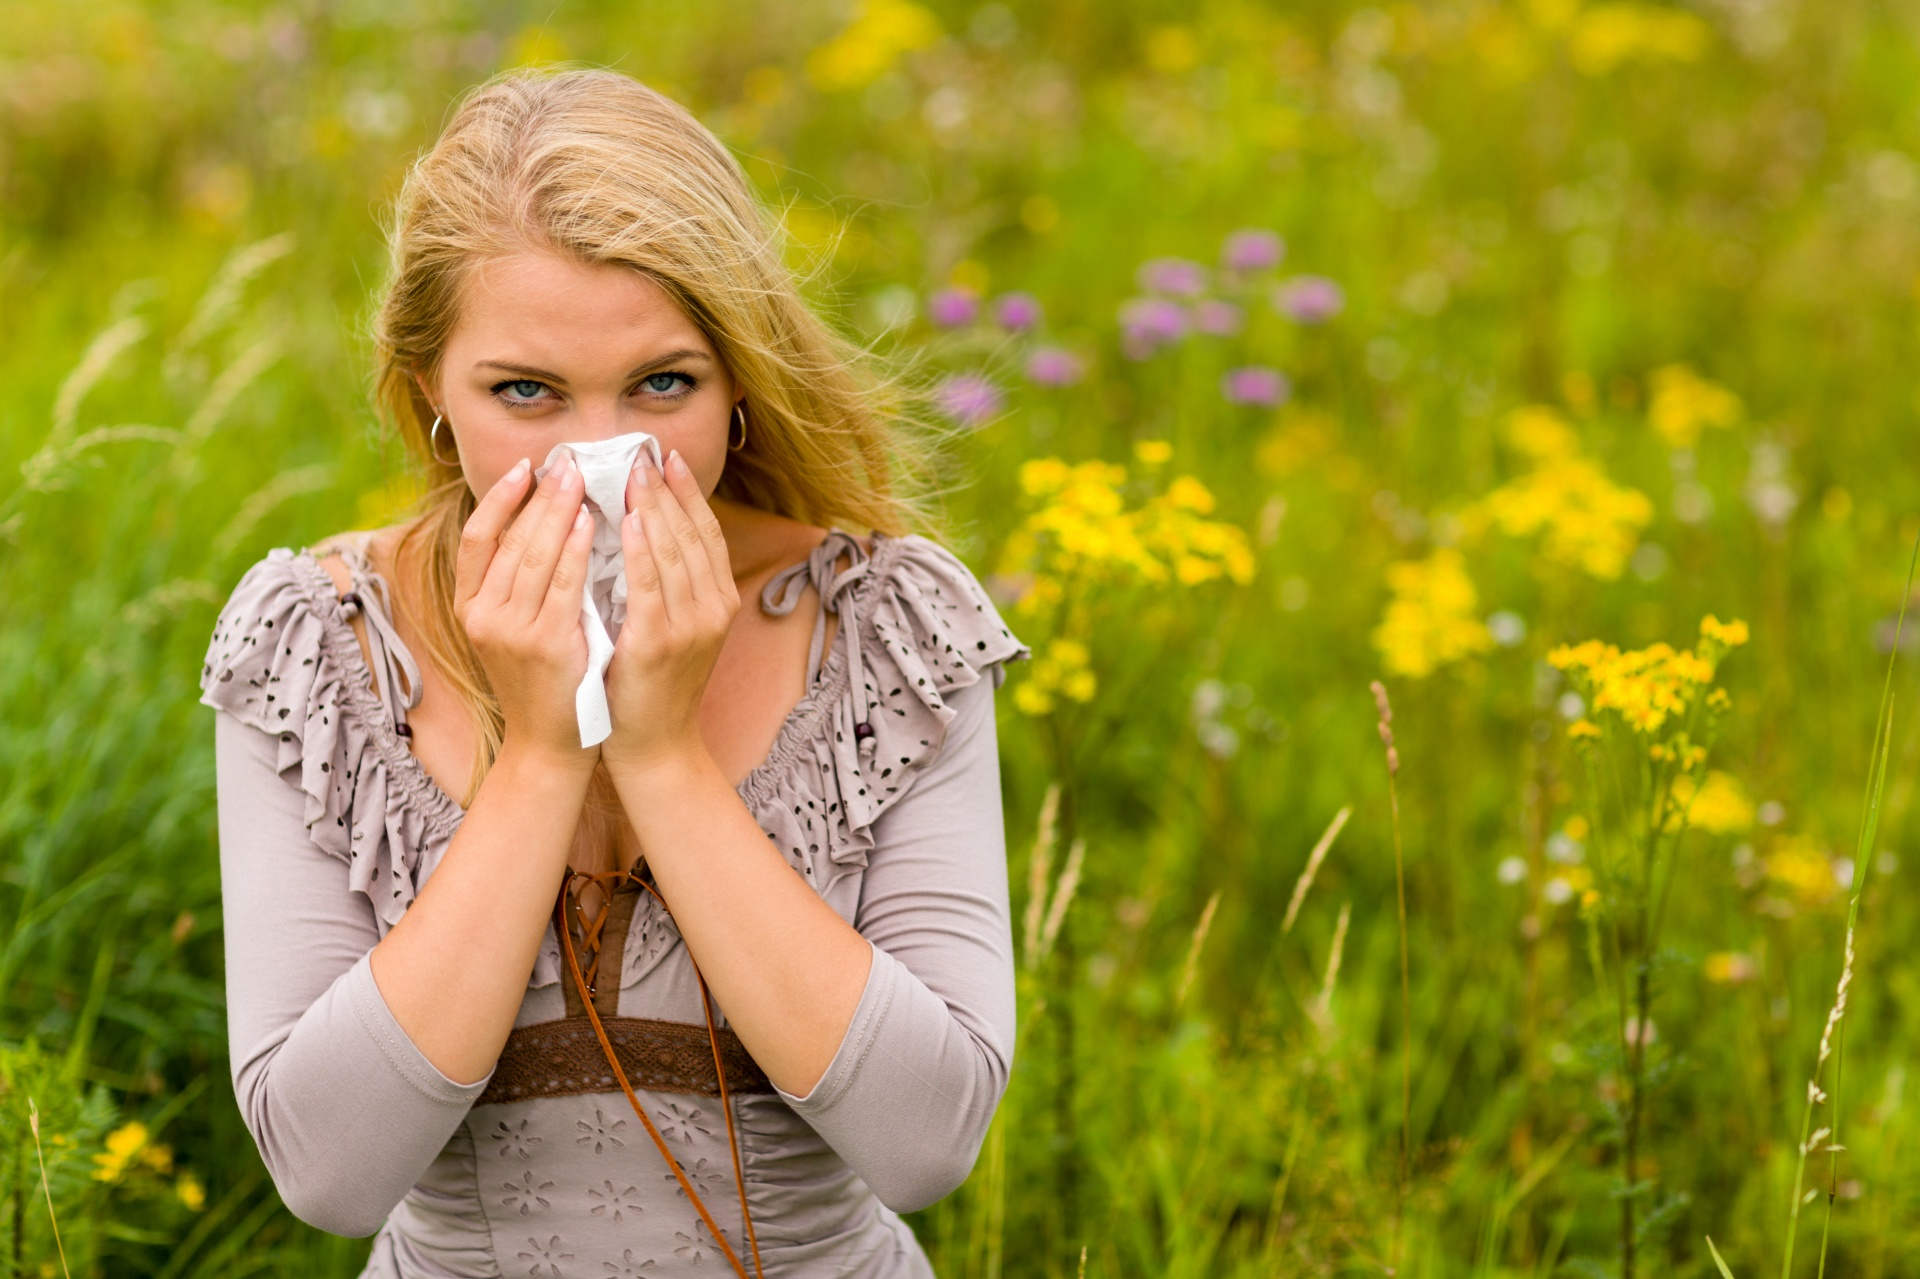 woman-with-a-hay-fever-1523533118Q18.jpg